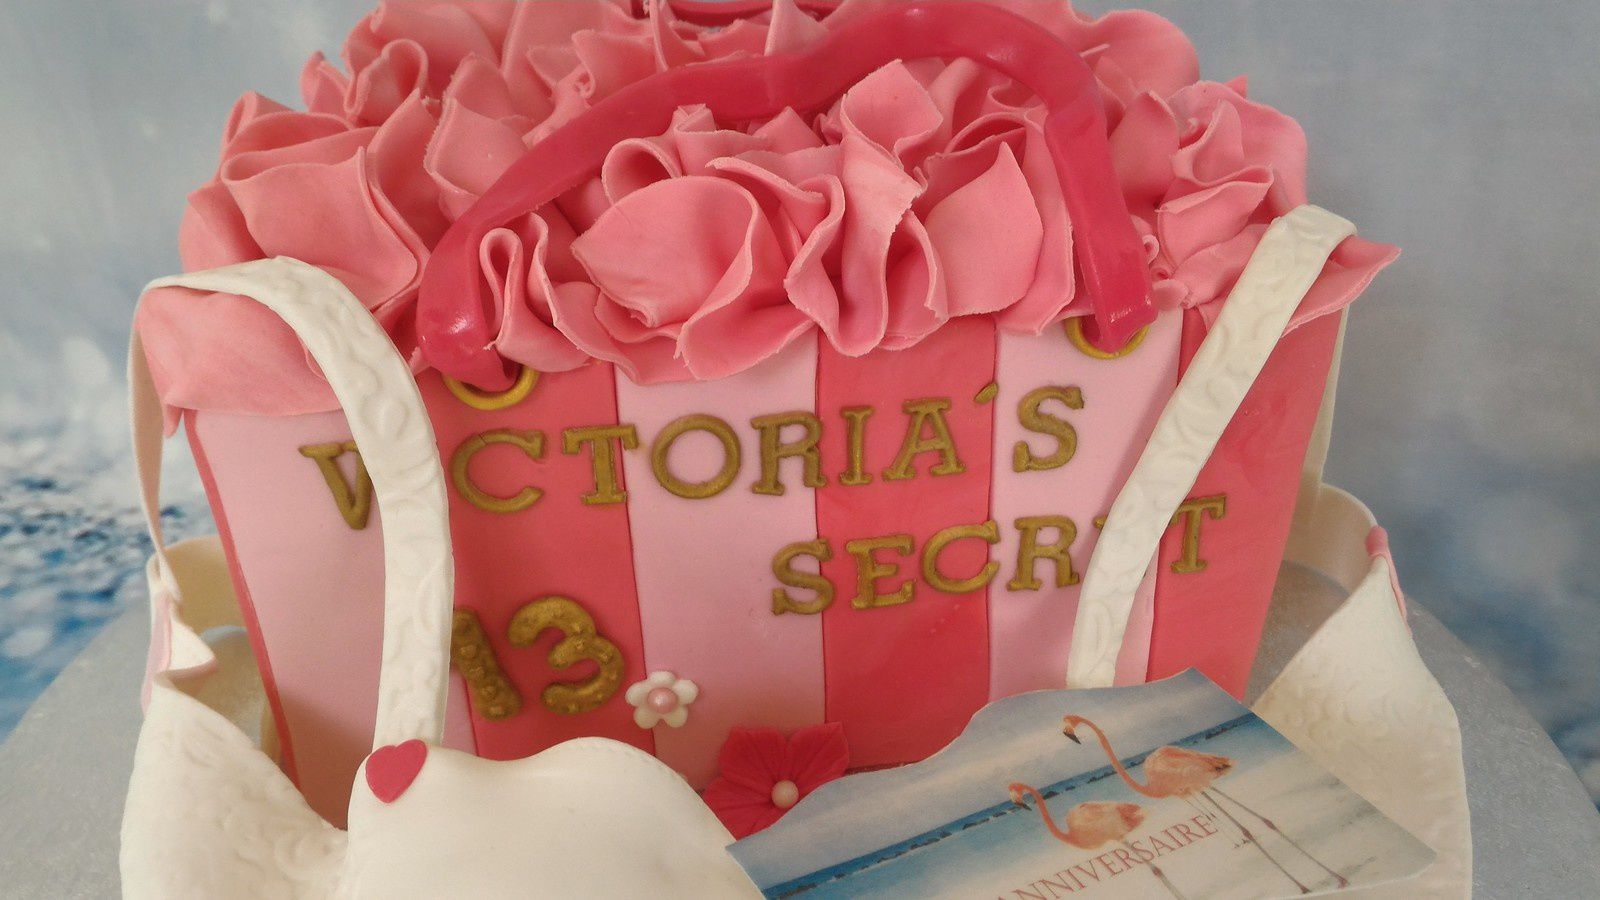 GATEAU VICTORIA'S SECRET